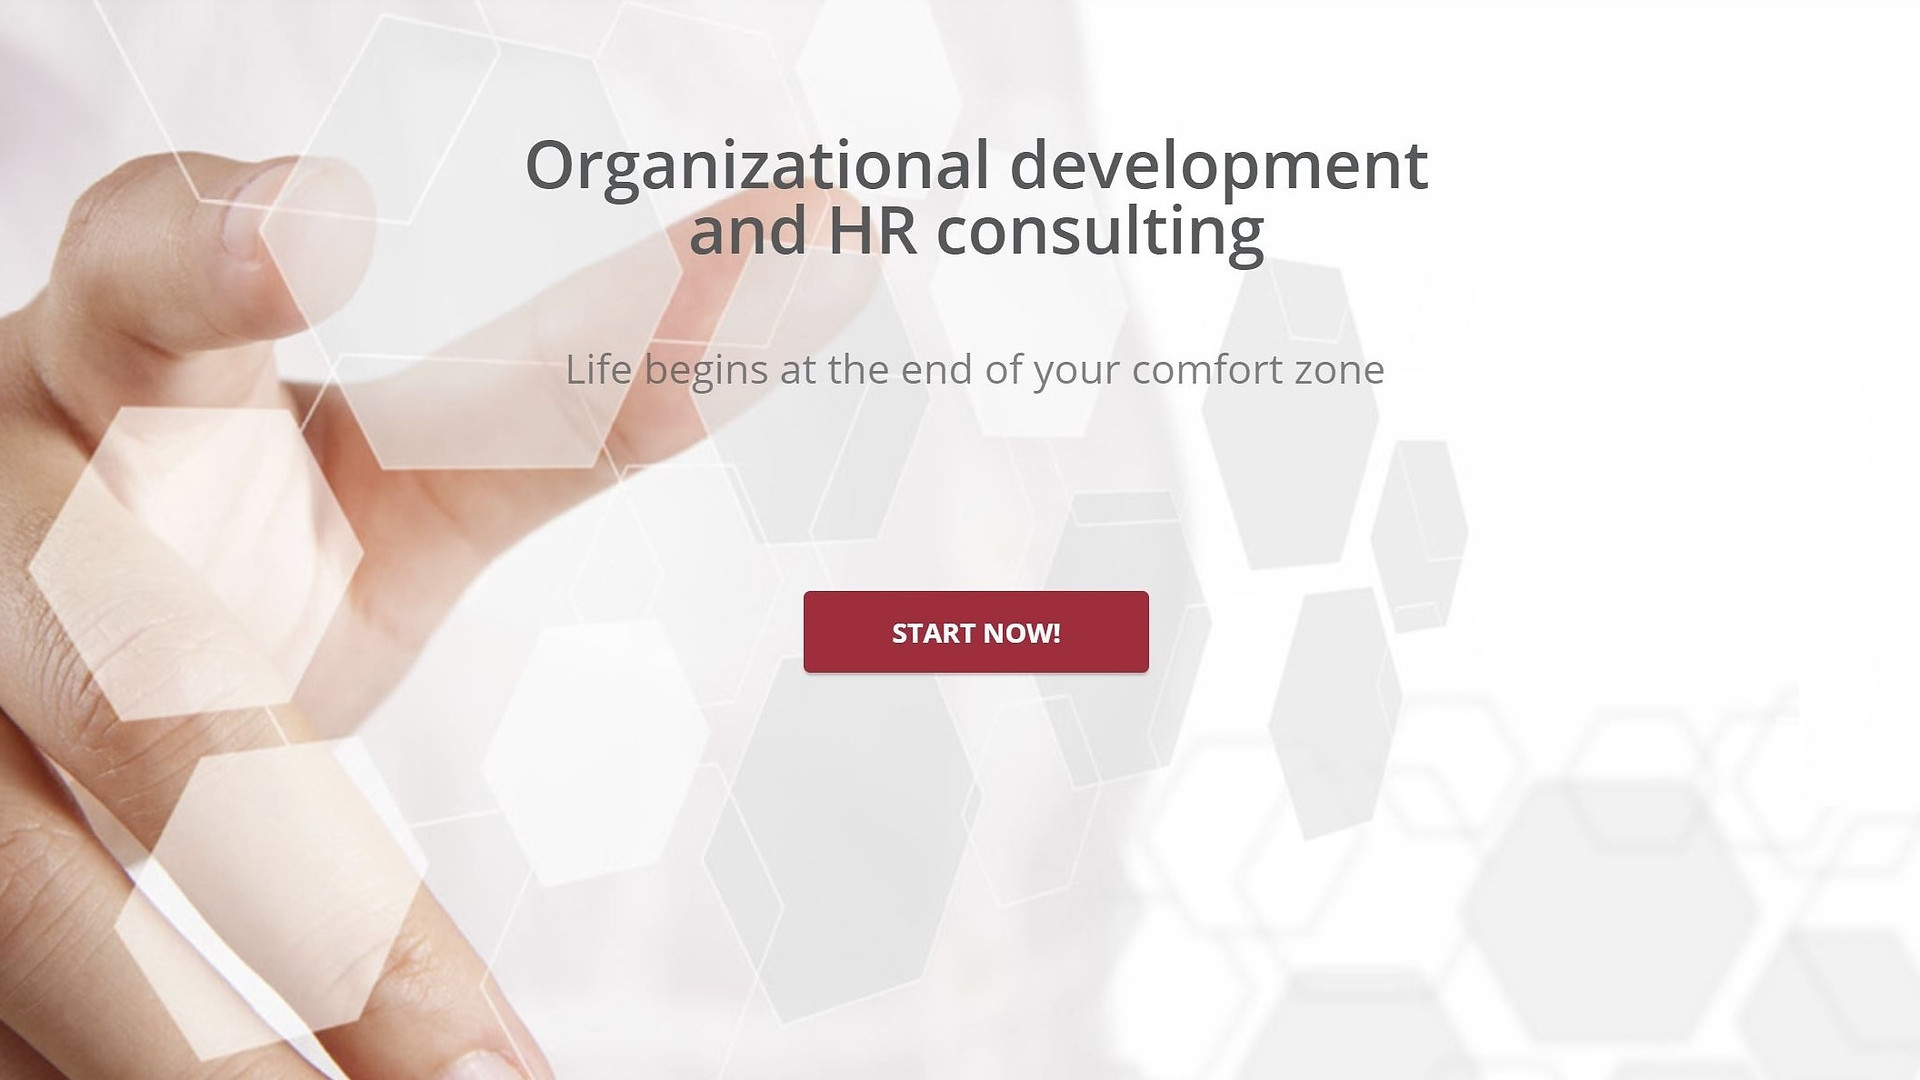 Organizational development and HR consulting